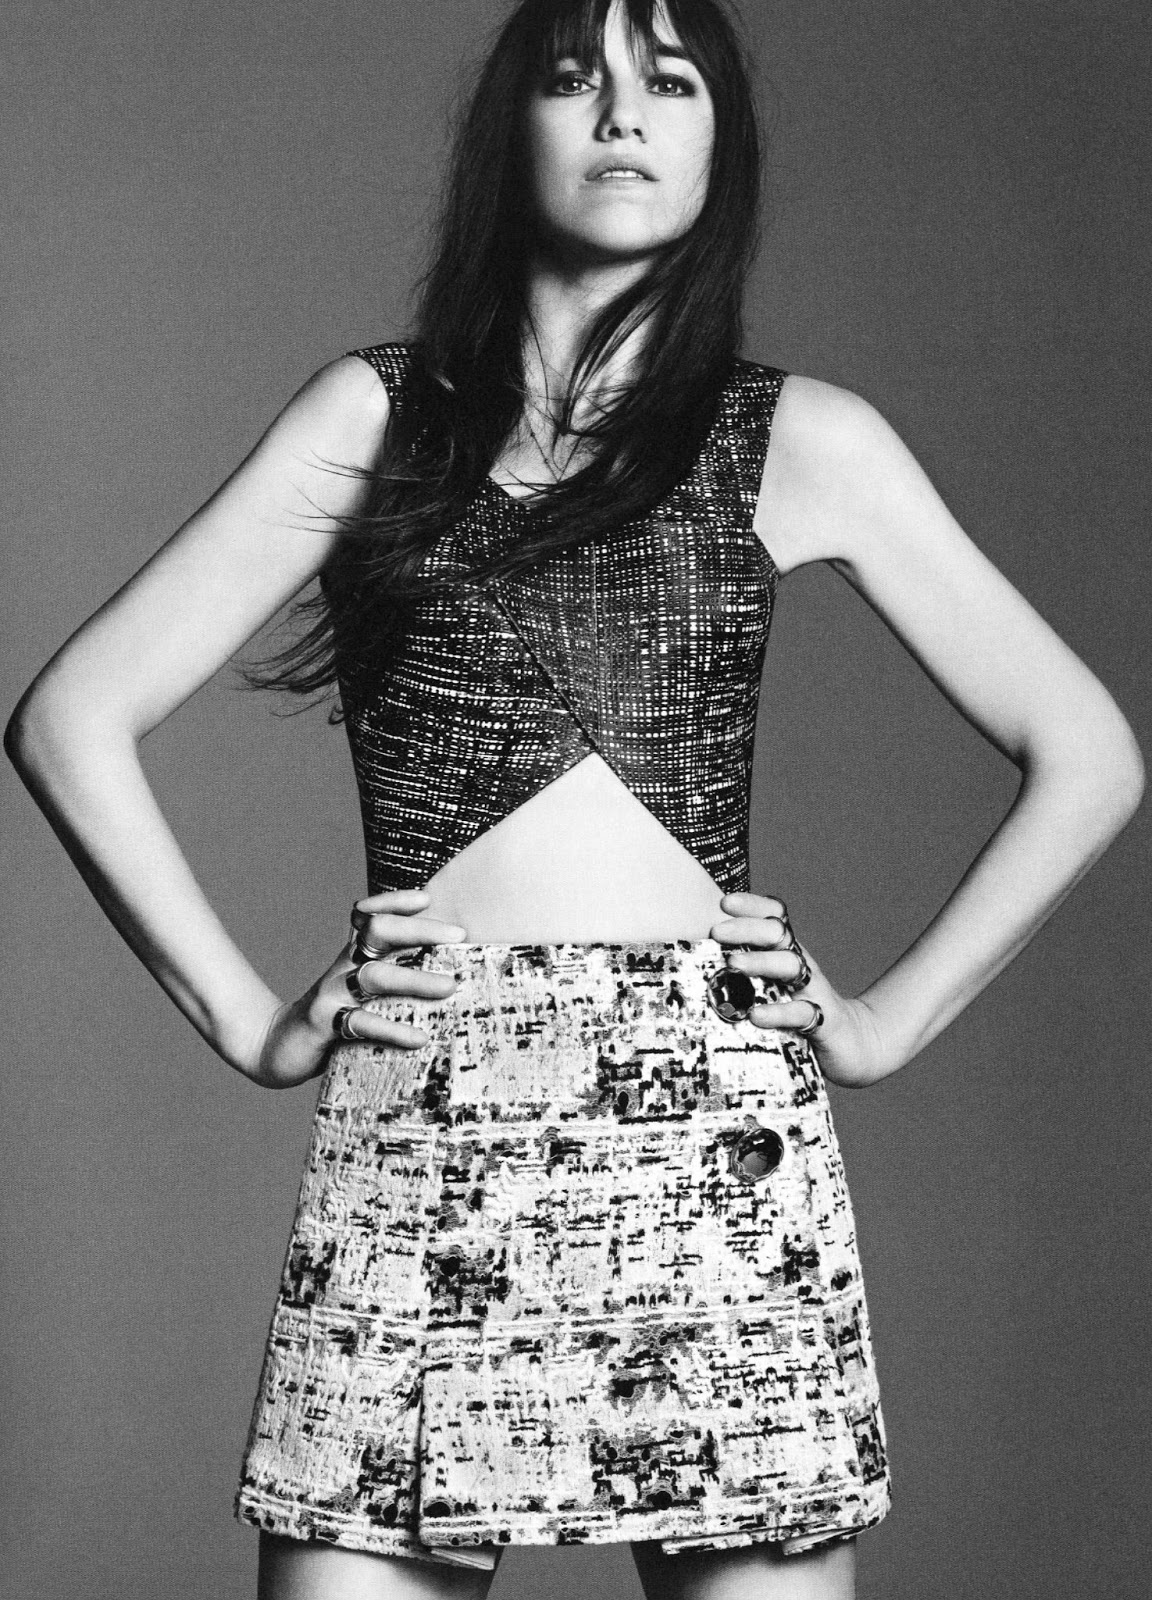 a-guide-to-cool-folkr-charlotte-gainsbourg-18